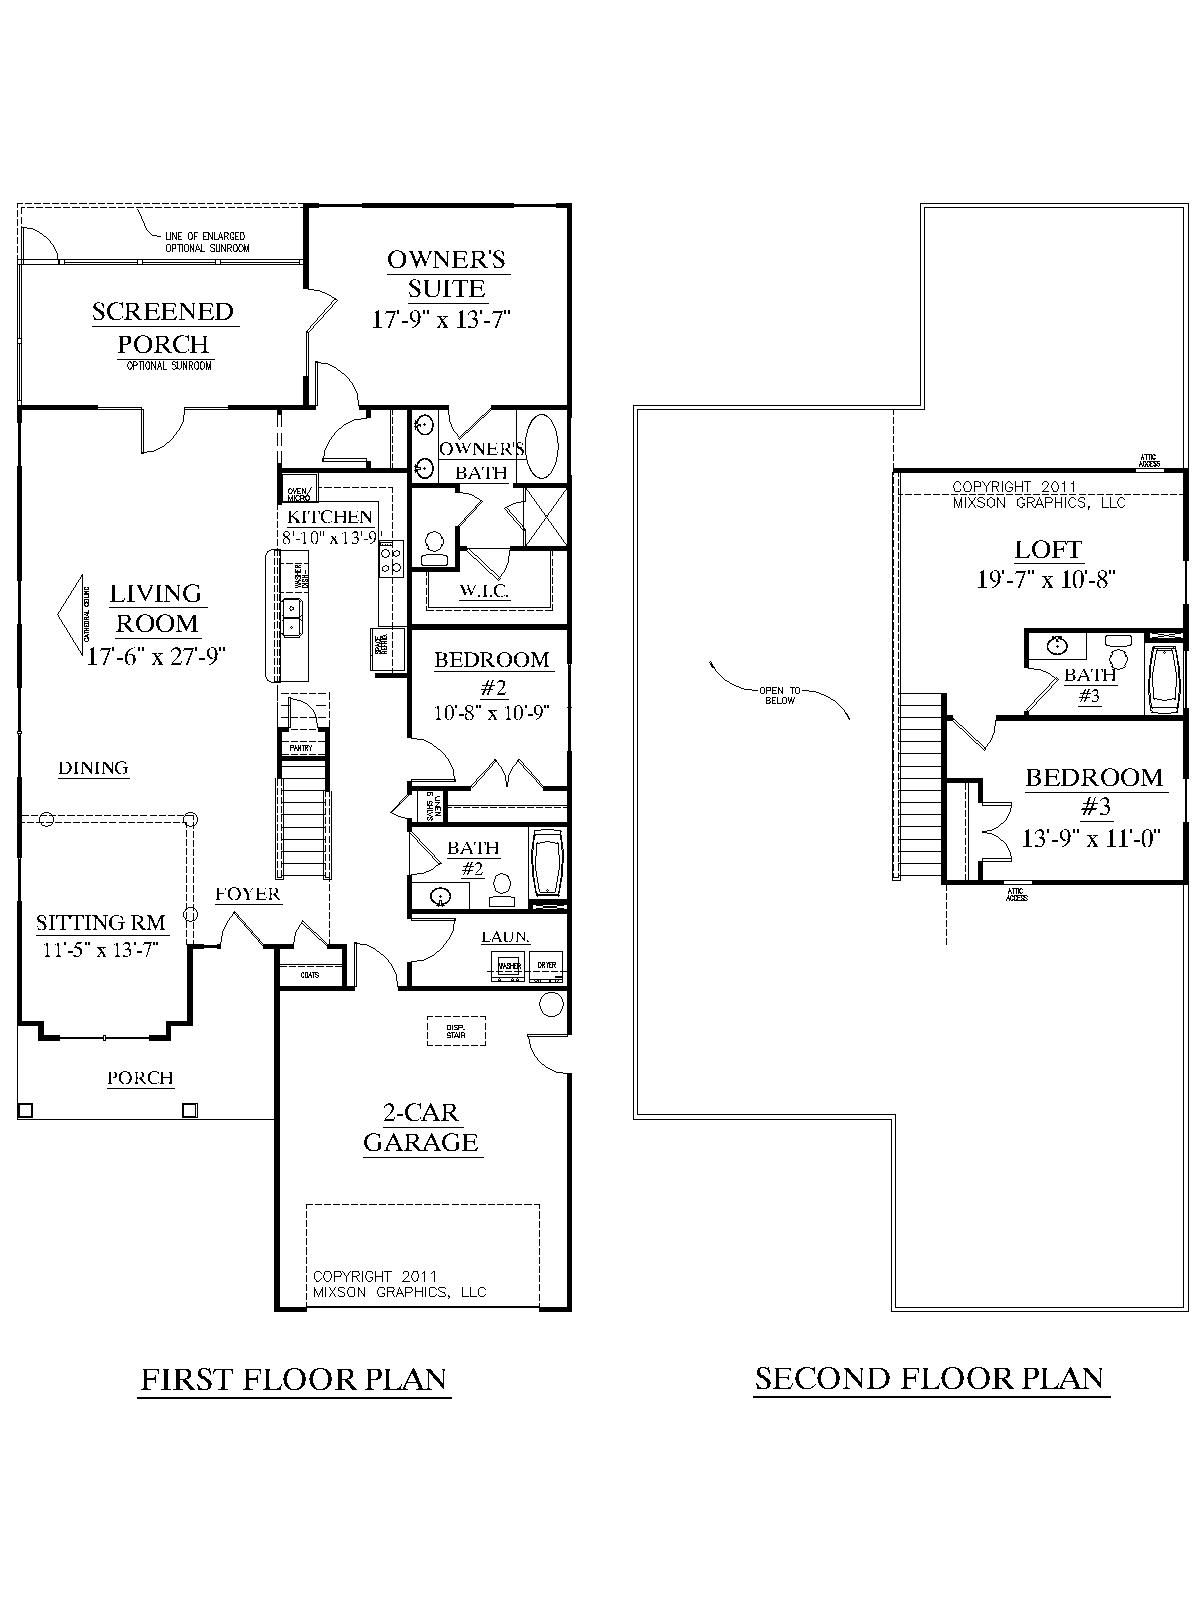 Master Bedroom Upstairs Floor Plans house plan 2344 arcadia floor plan - traditional 1-1/2-story house